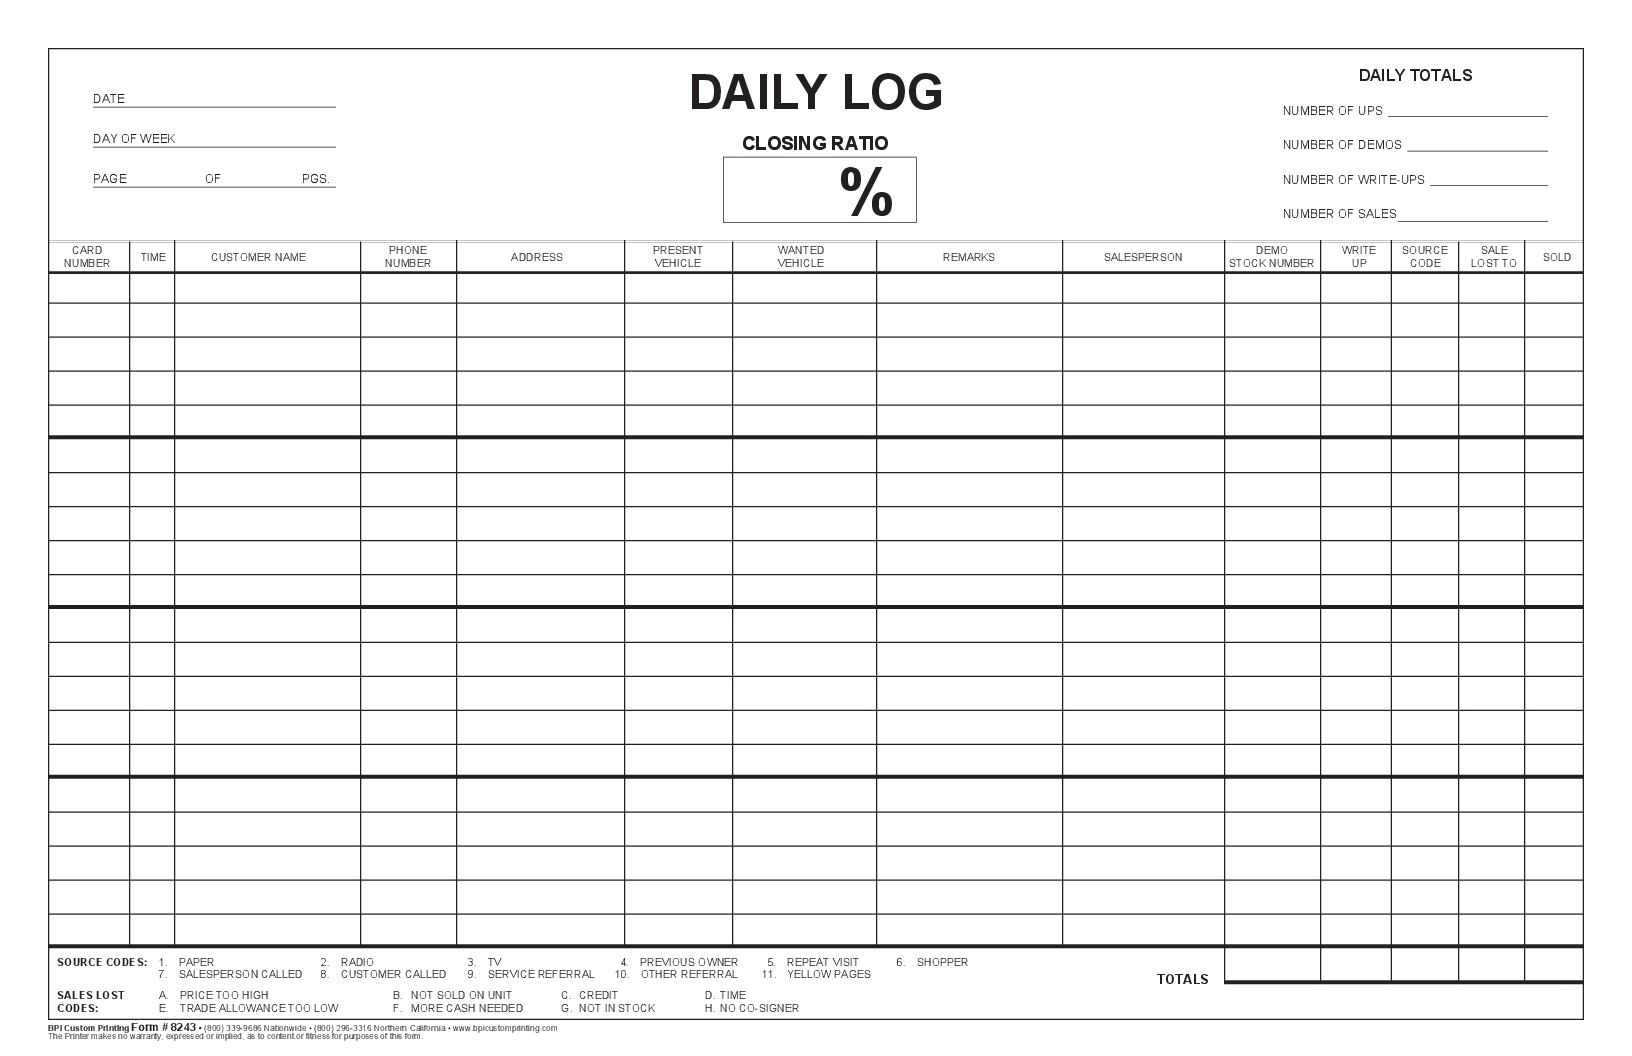 Closing Ratio Daily Log